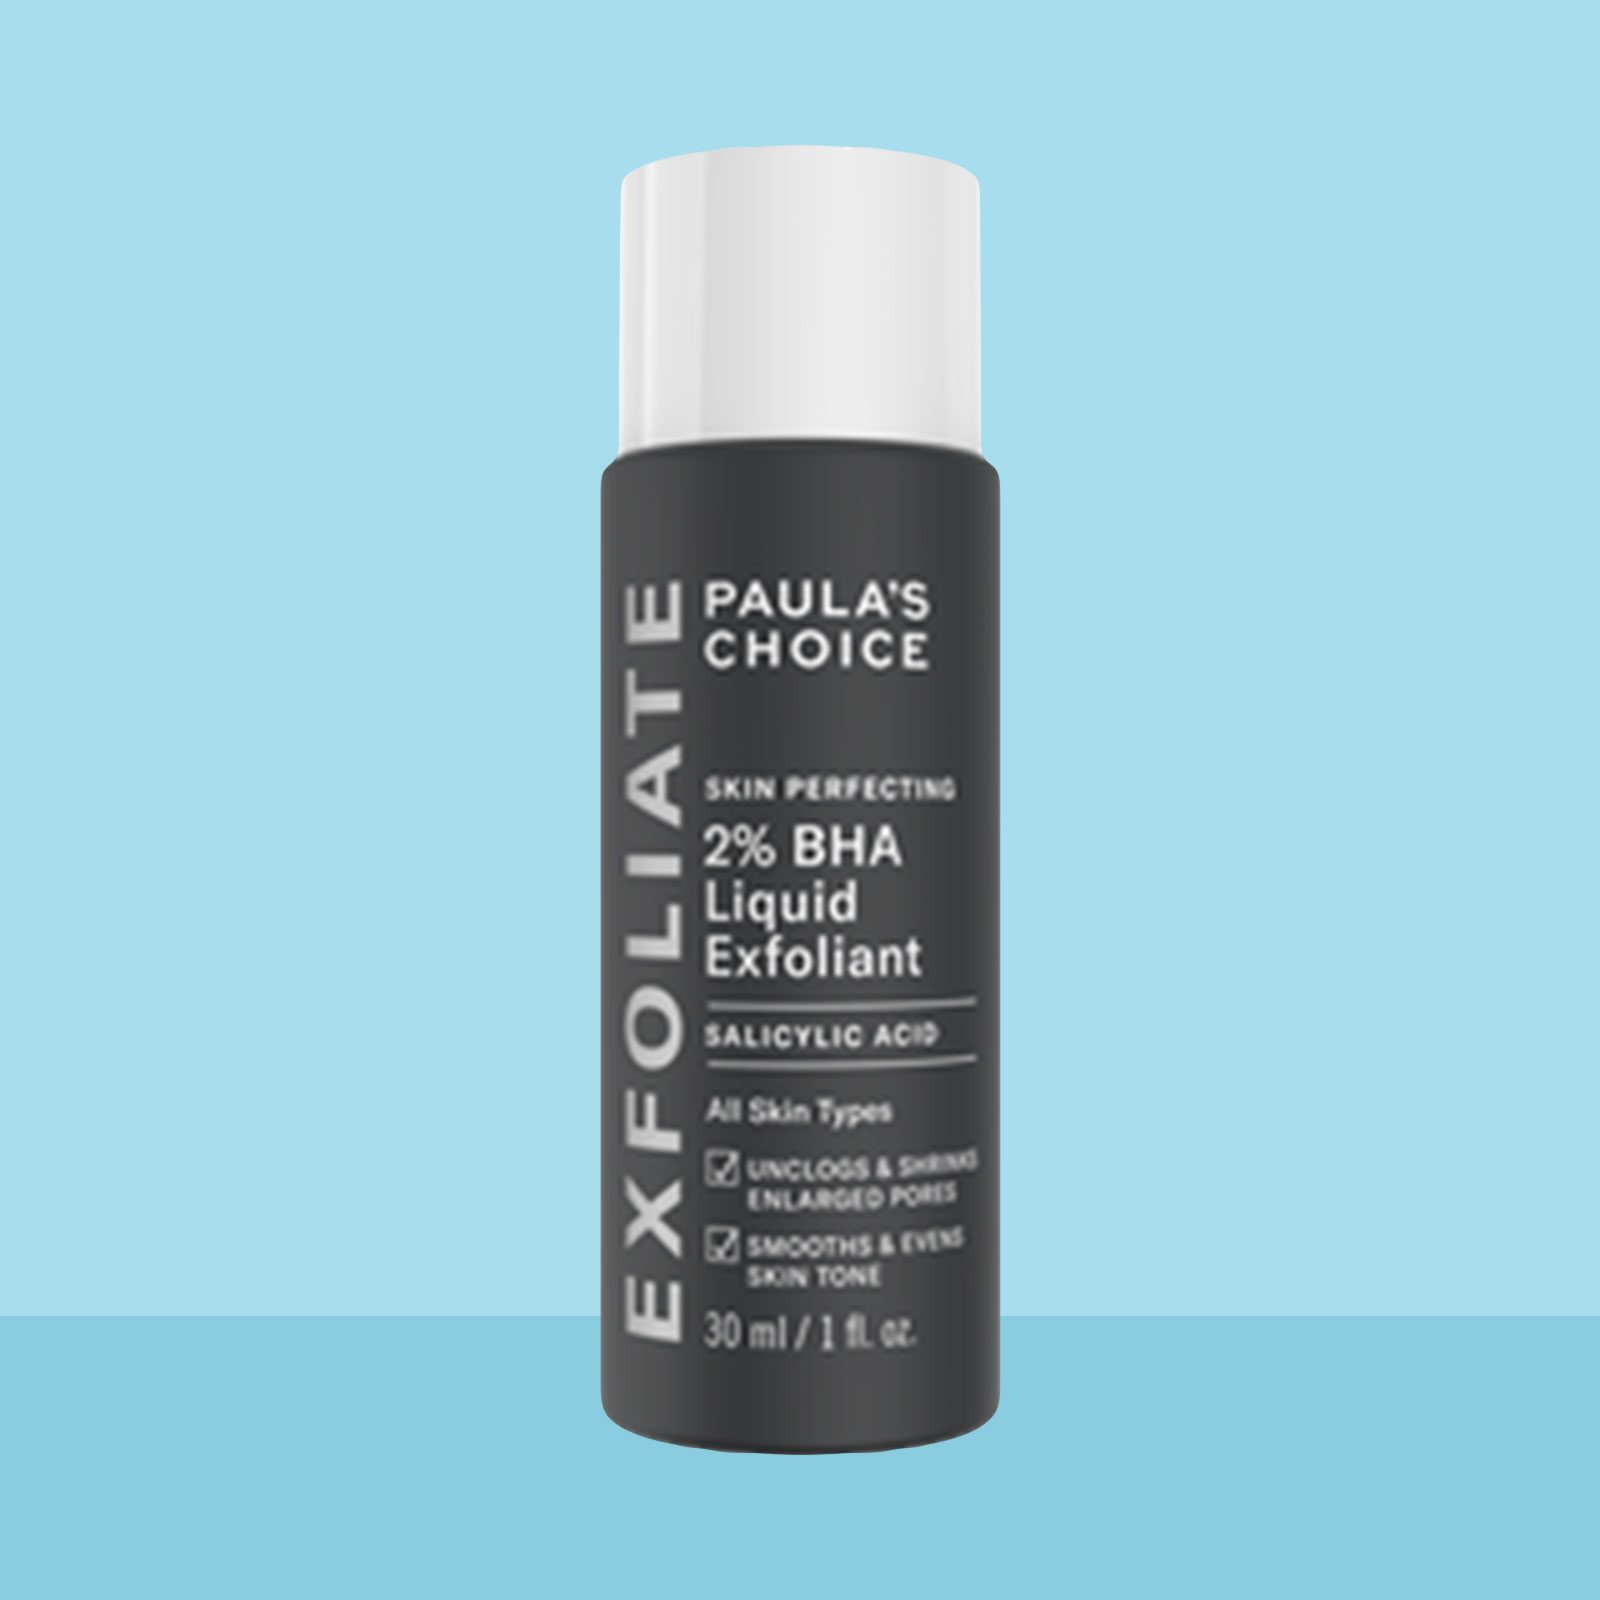 Best Face Serum for clearing acne: Paula's Choice Skin Perfecting 2% BHA Liquid Exfoliant